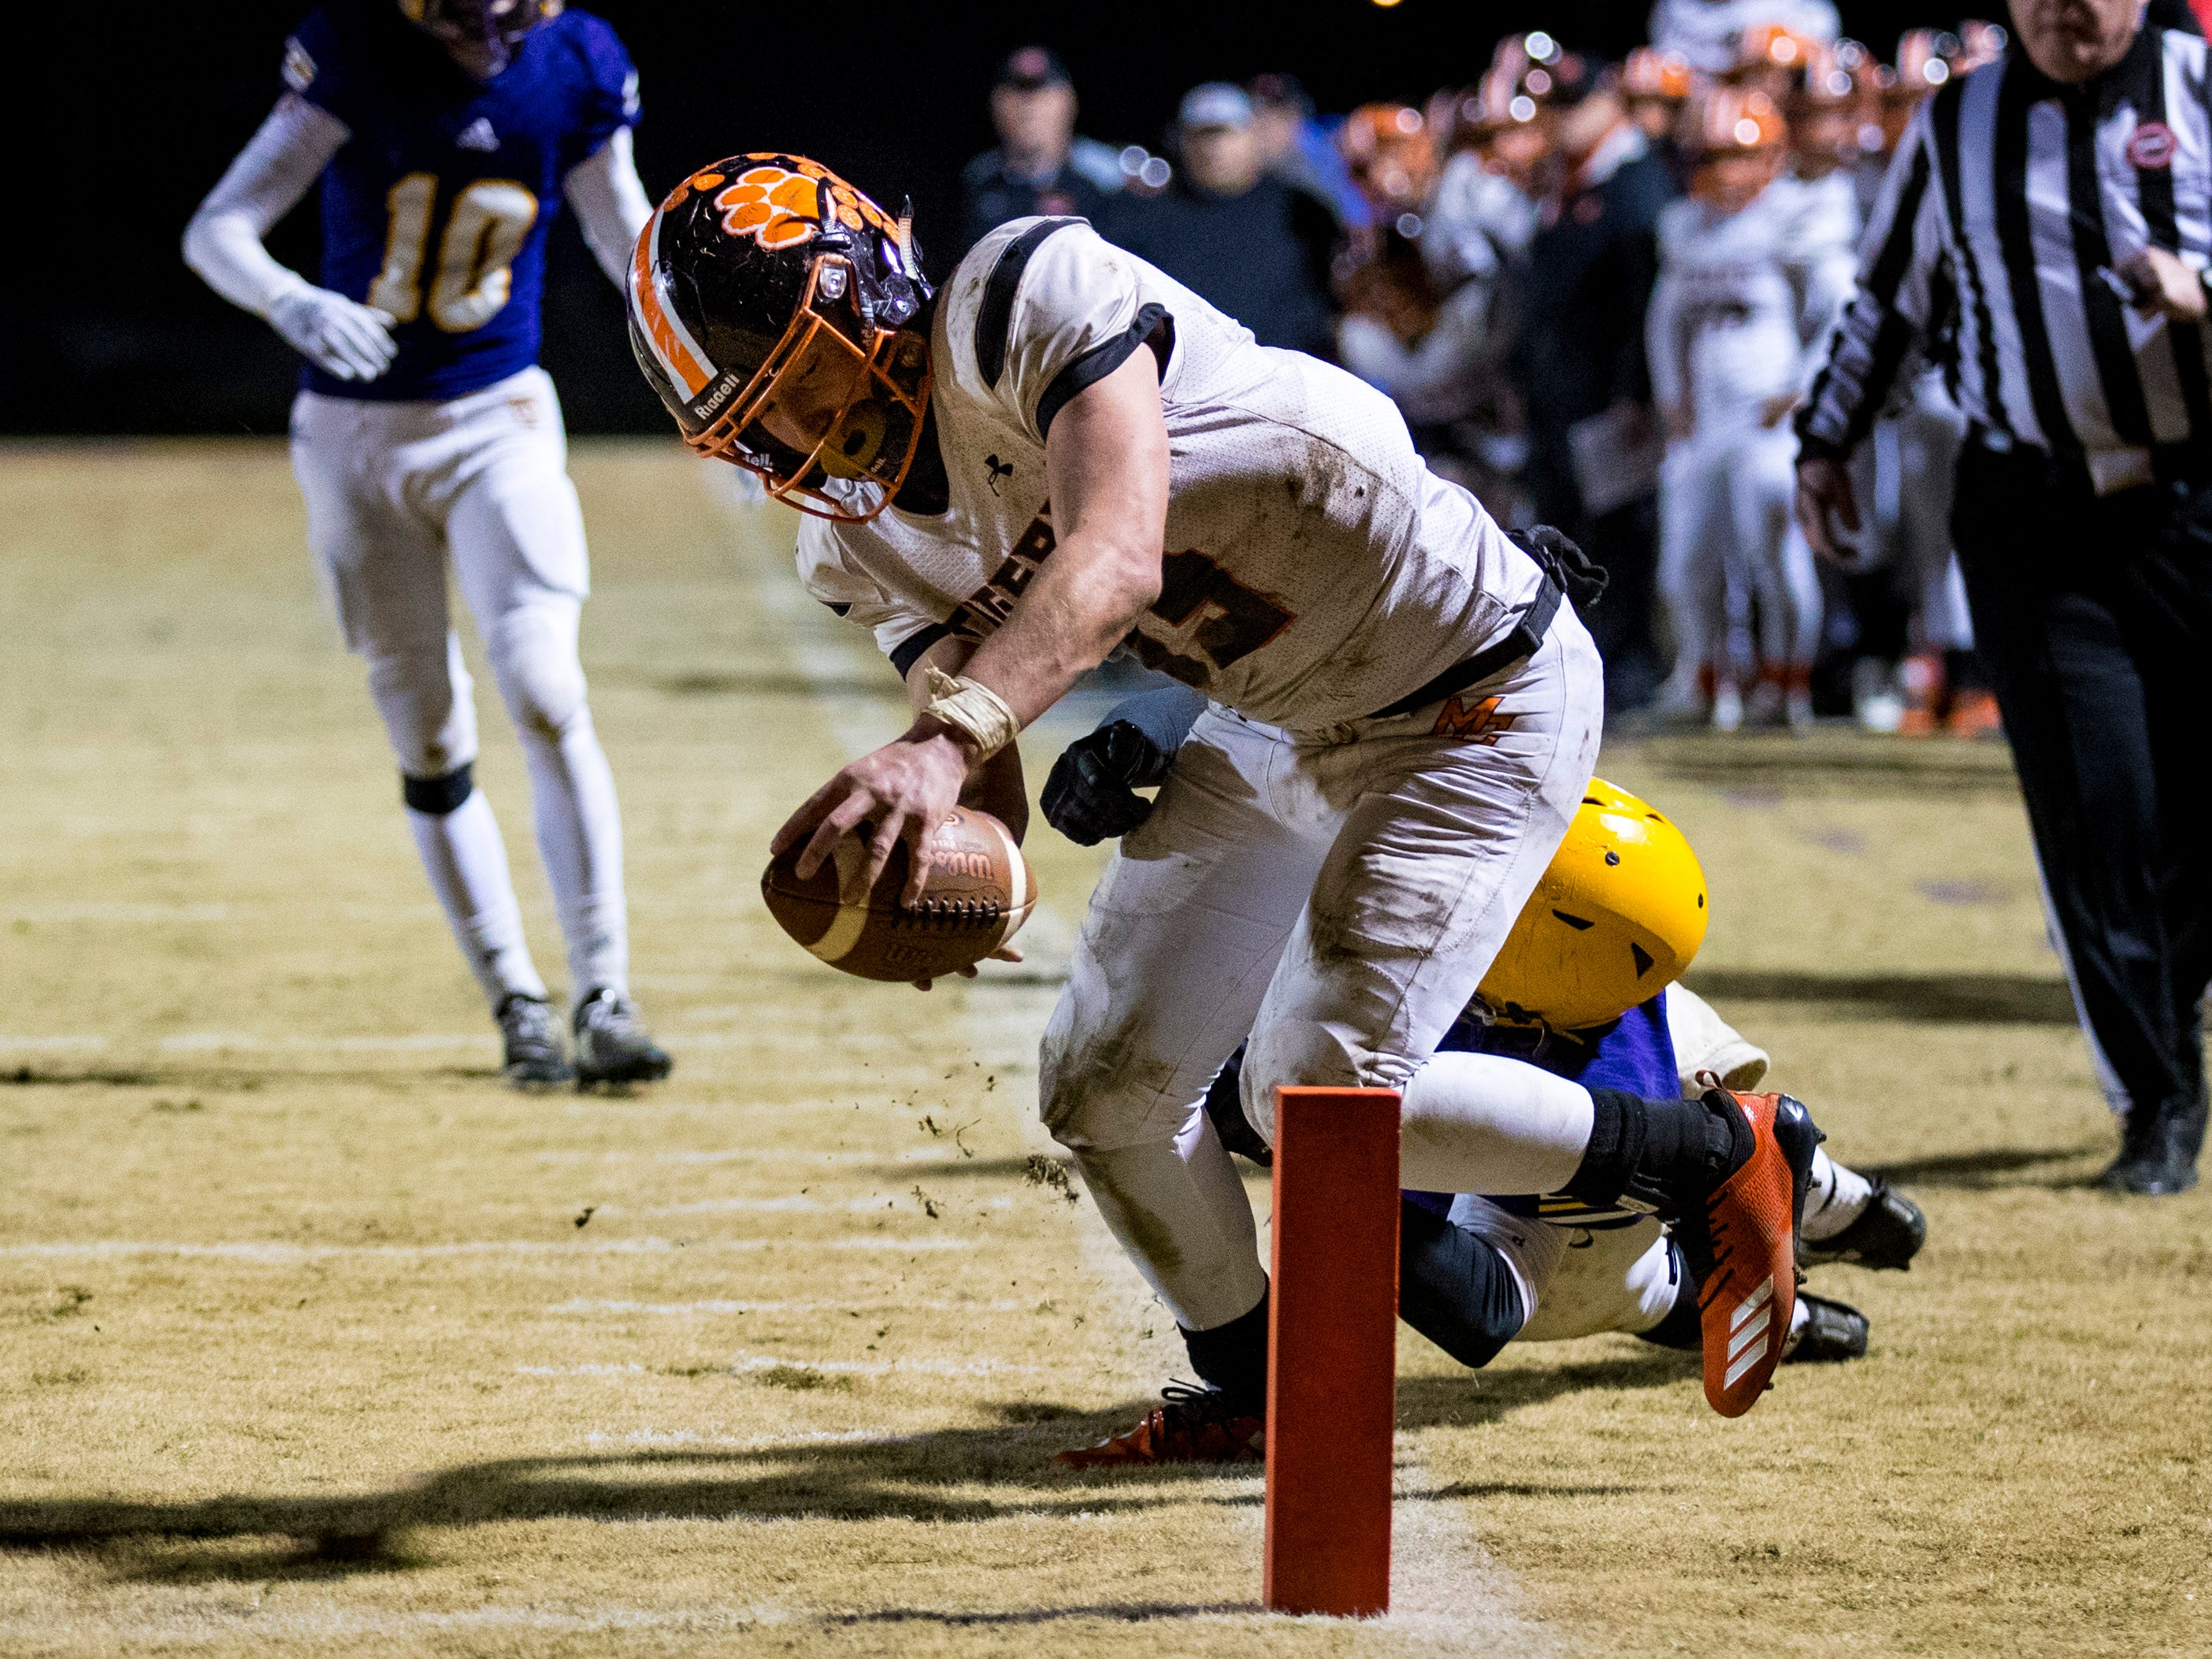 Meigs County's Aaron Swafford (19) tries to get past the goal line but is ruled out of bounds before the line during Trousdale County's game against Meigs County at Jim Satterfield Stadium in Hartsville on Friday, Nov. 23, 2018.